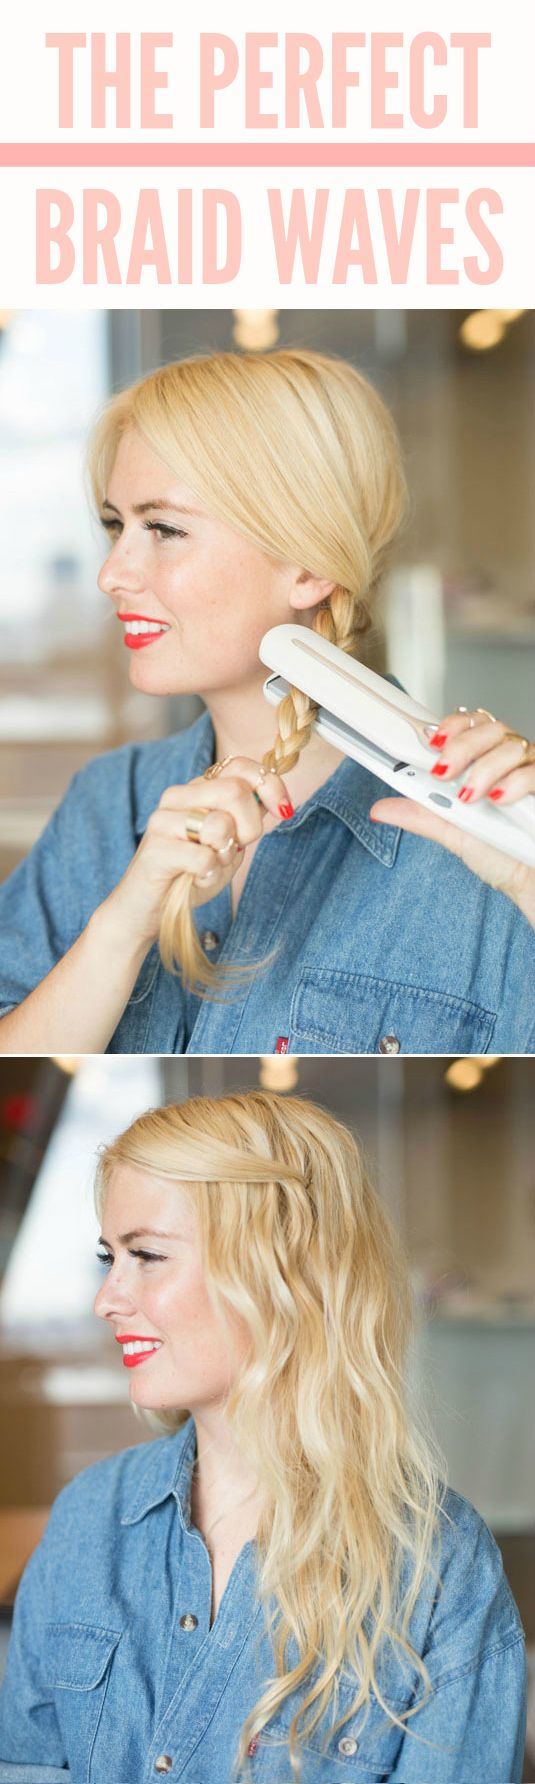 images about cosmetology on pinterest tease hair thin hair